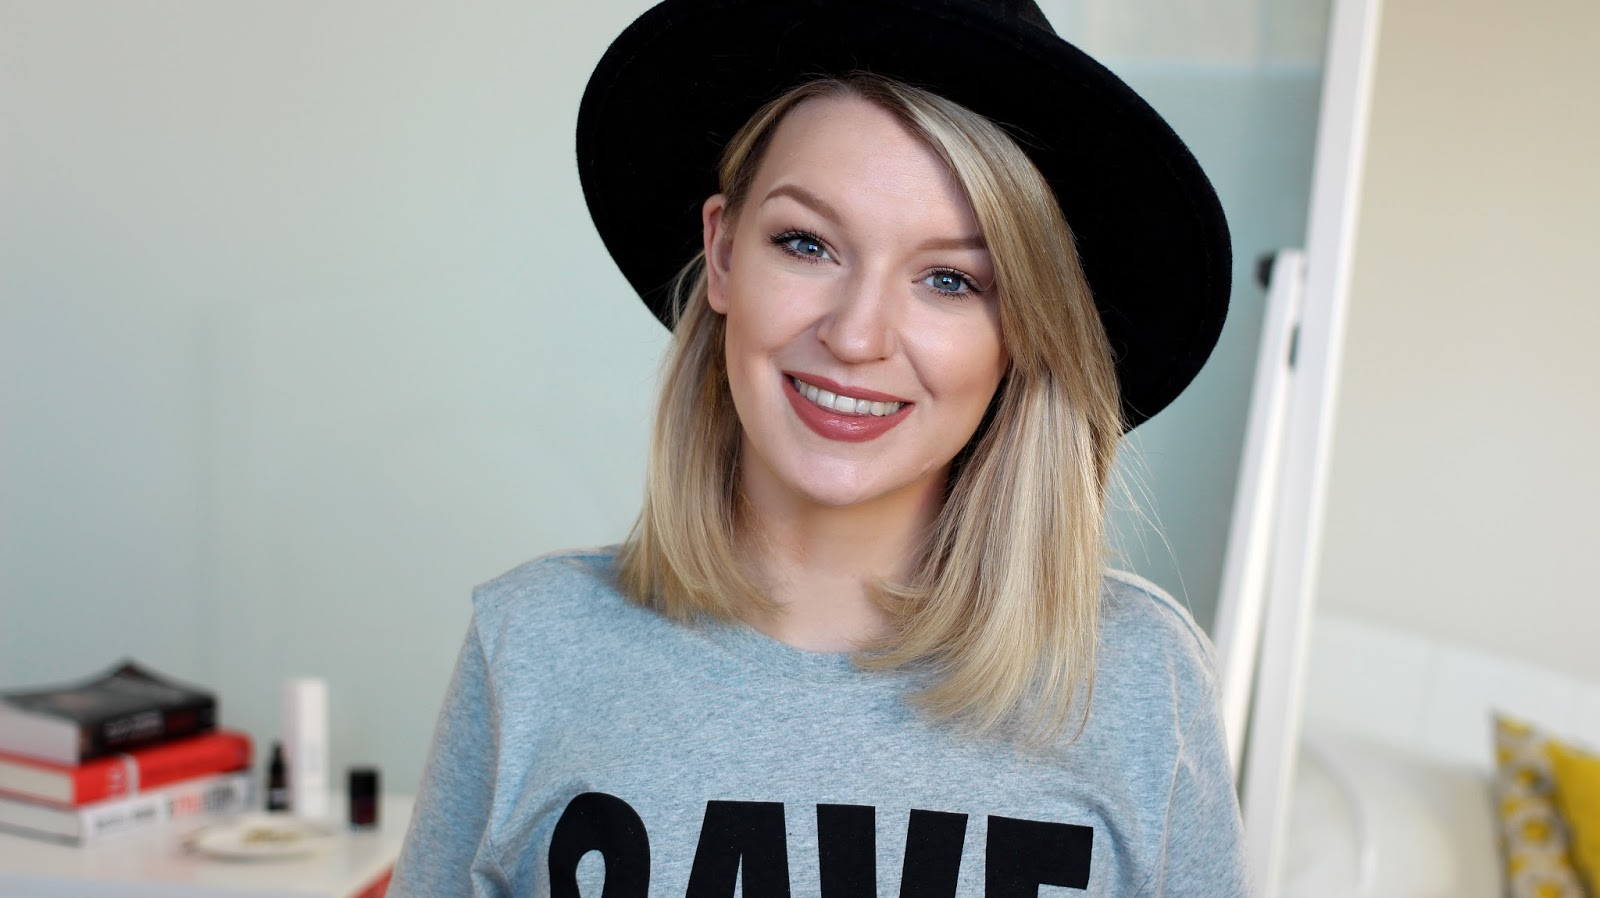 A beauty blogger fillms her Daily Make-up Routine for YouTube